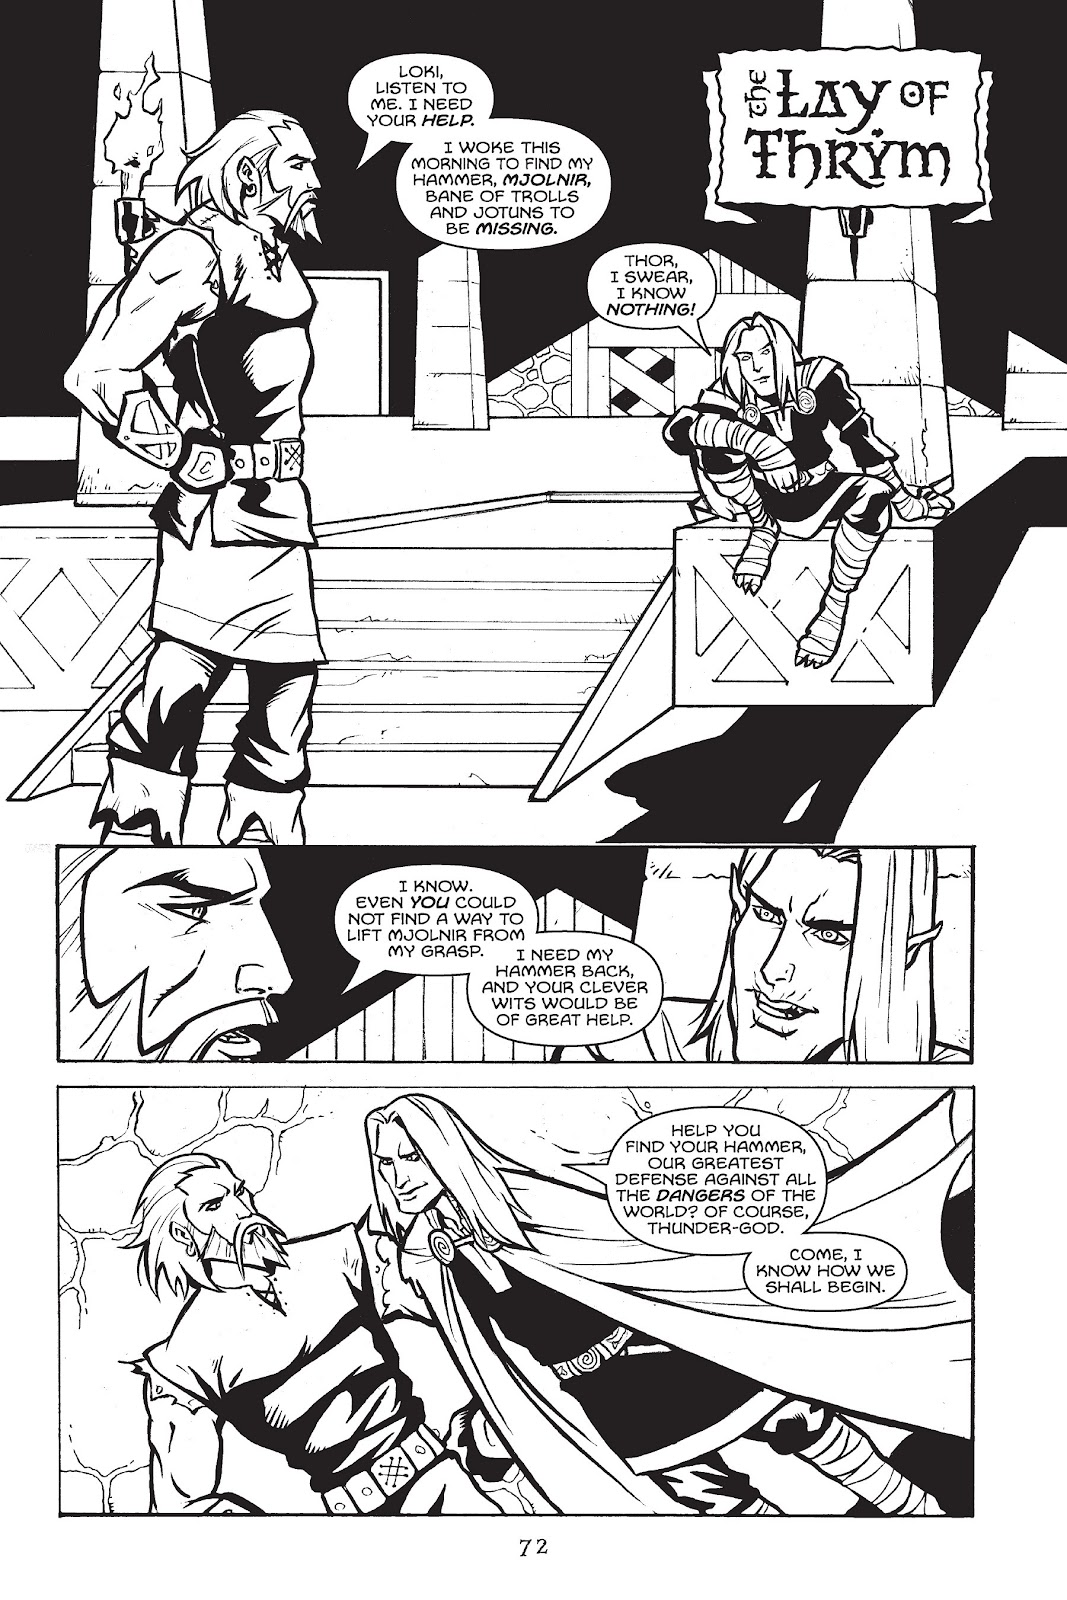 Read online Gods of Asgard comic -  Issue # TPB (Part 1) - 73